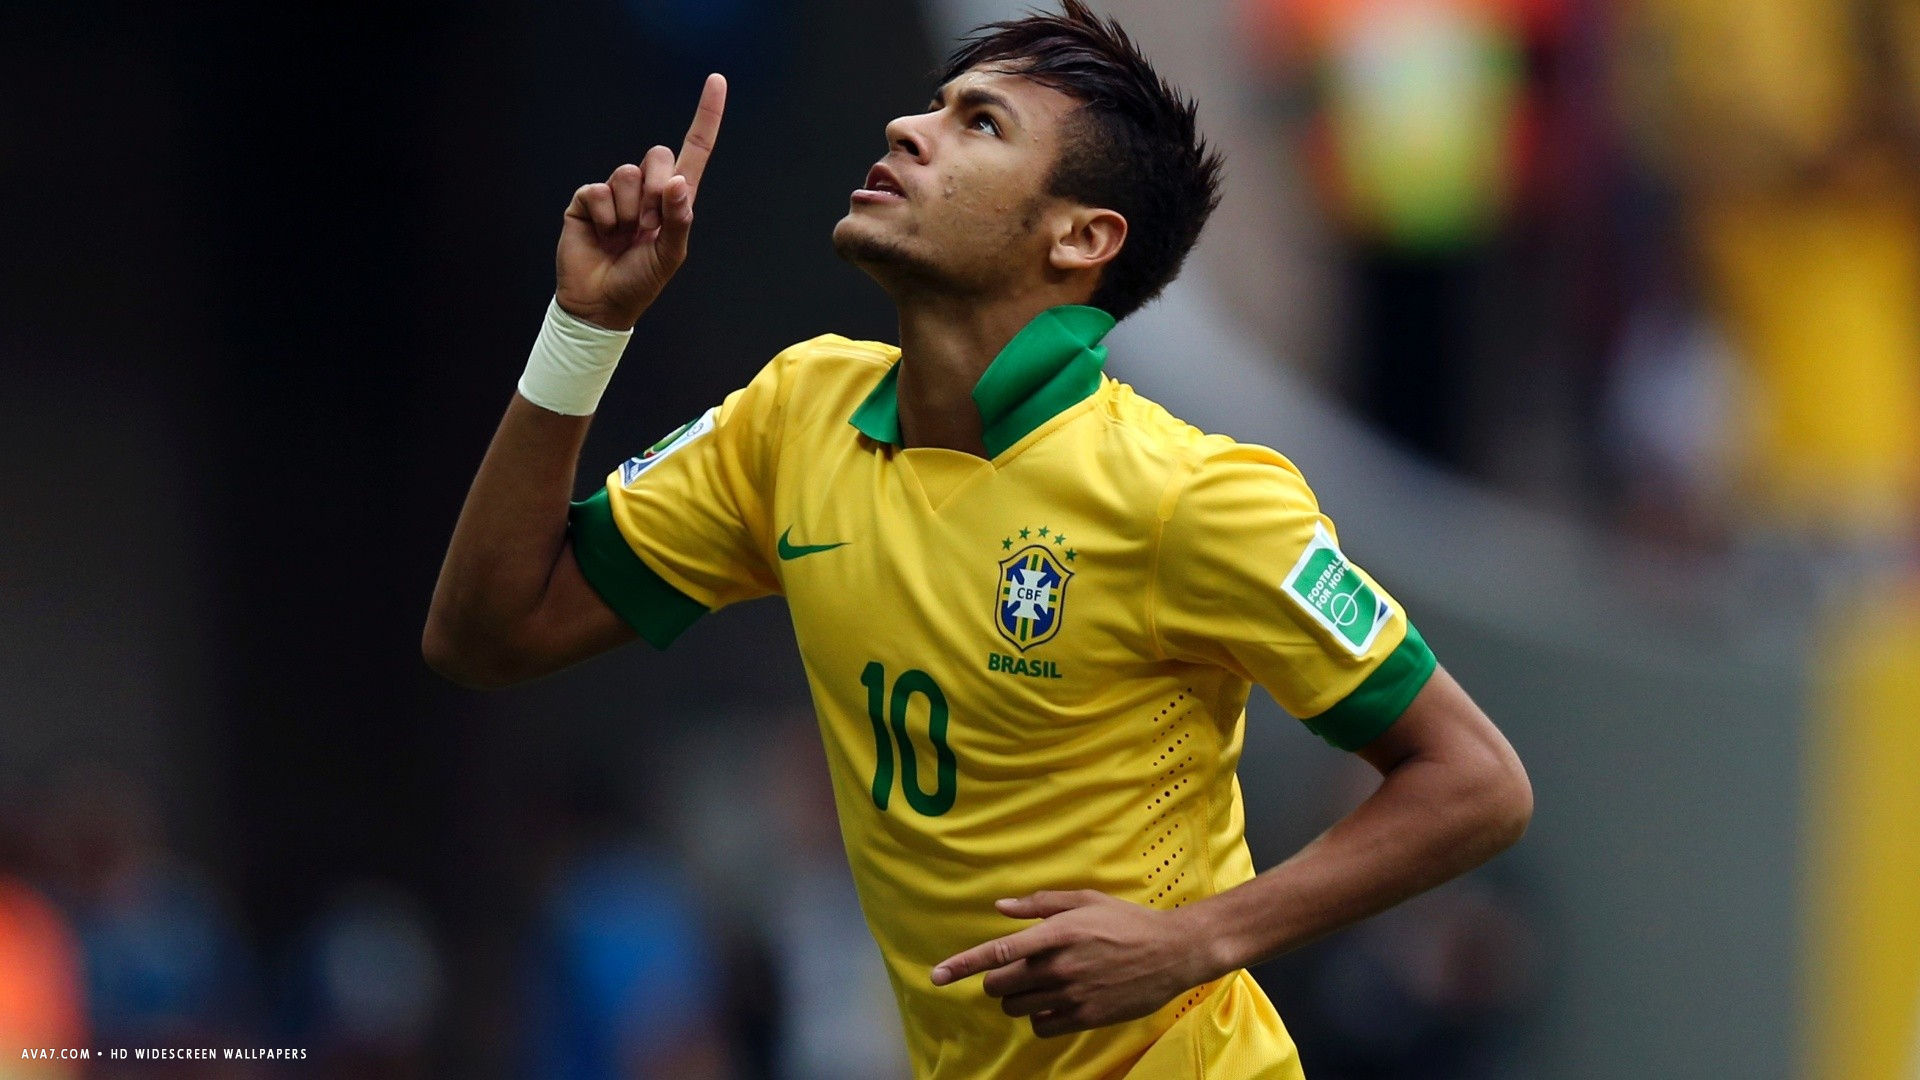 neymar football player hd widescreen wallpaper